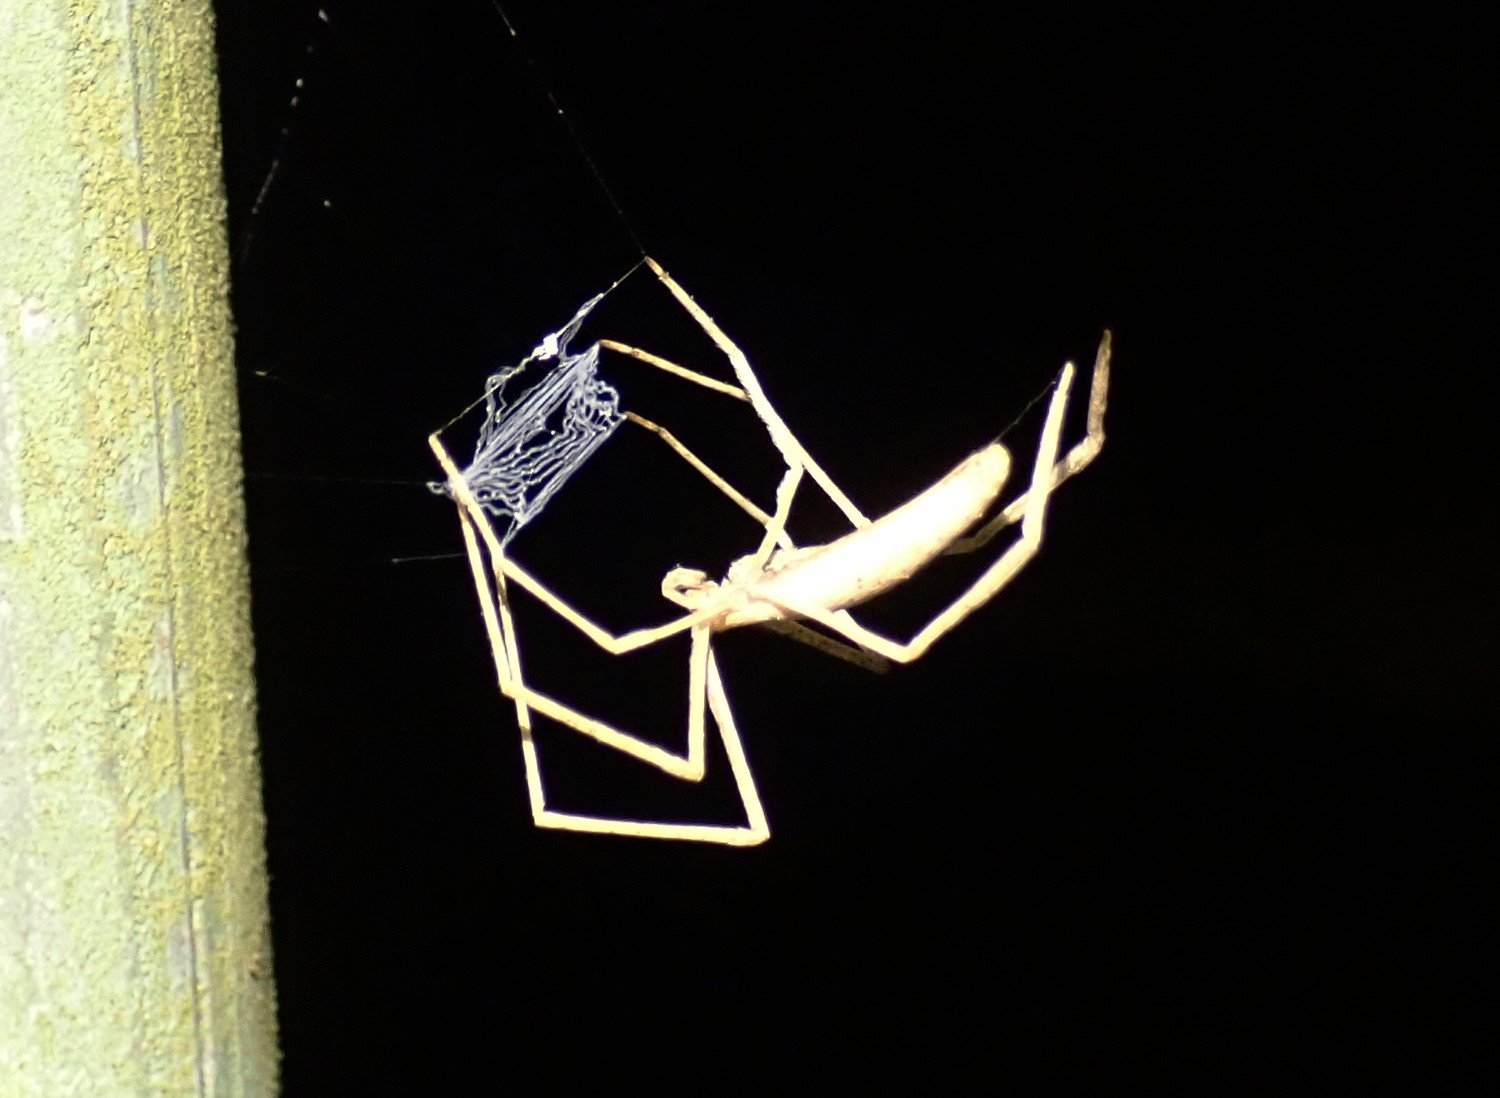 Ogre-faced spider with net